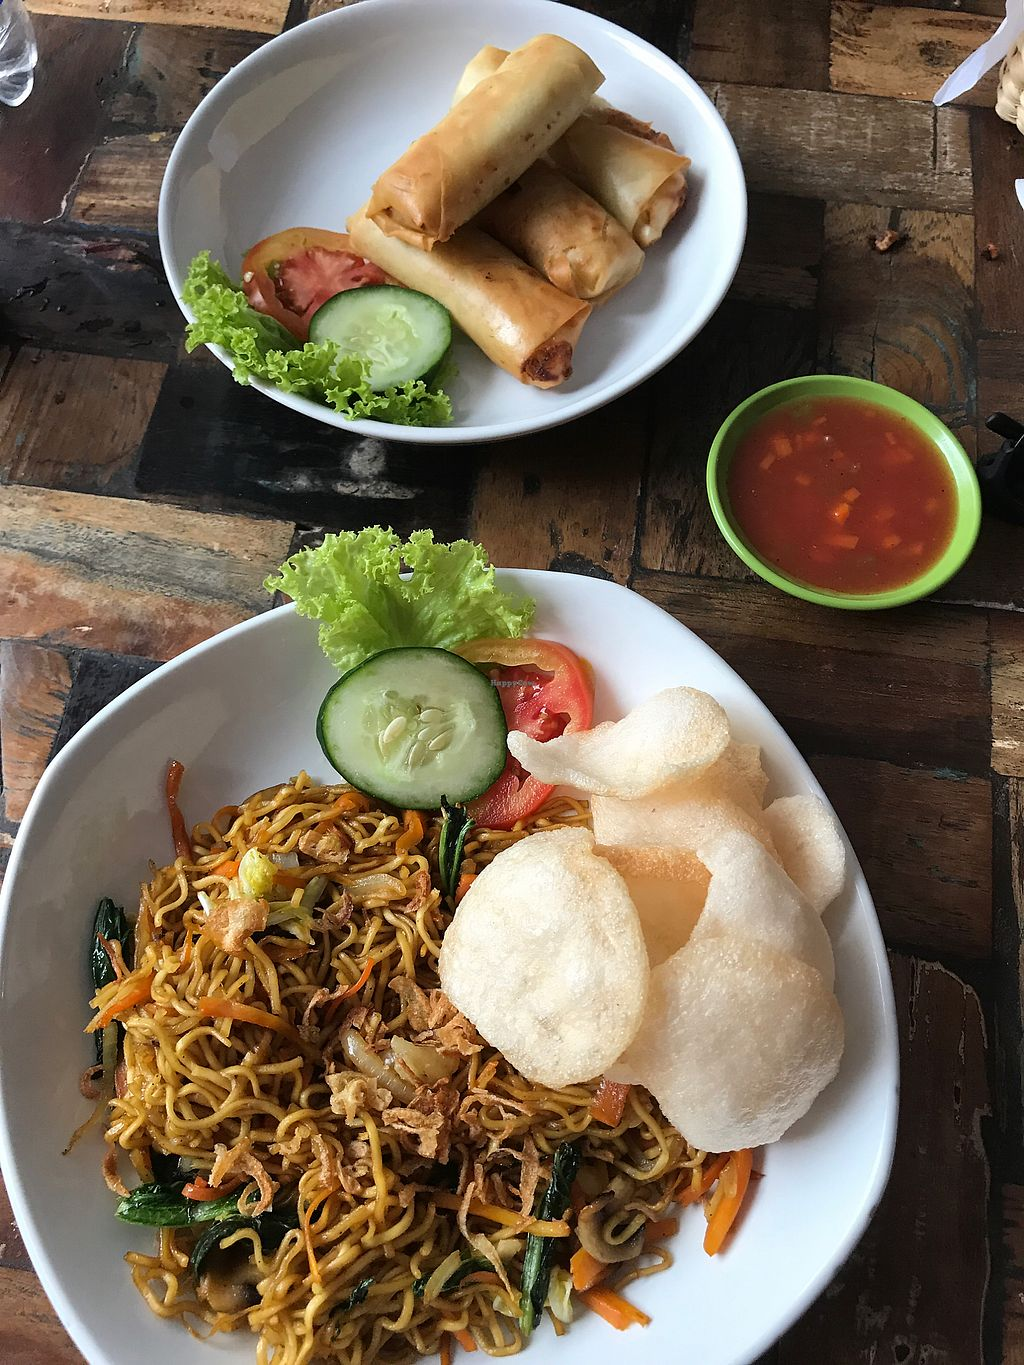 """Photo of Tasty Vegan - Poppies  by <a href=""""/members/profile/rehinathevegan"""">rehinathevegan</a> <br/>Vegan Mi Goreng and Spring Rolls <br/> November 23, 2017  - <a href='/contact/abuse/image/105682/328308'>Report</a>"""